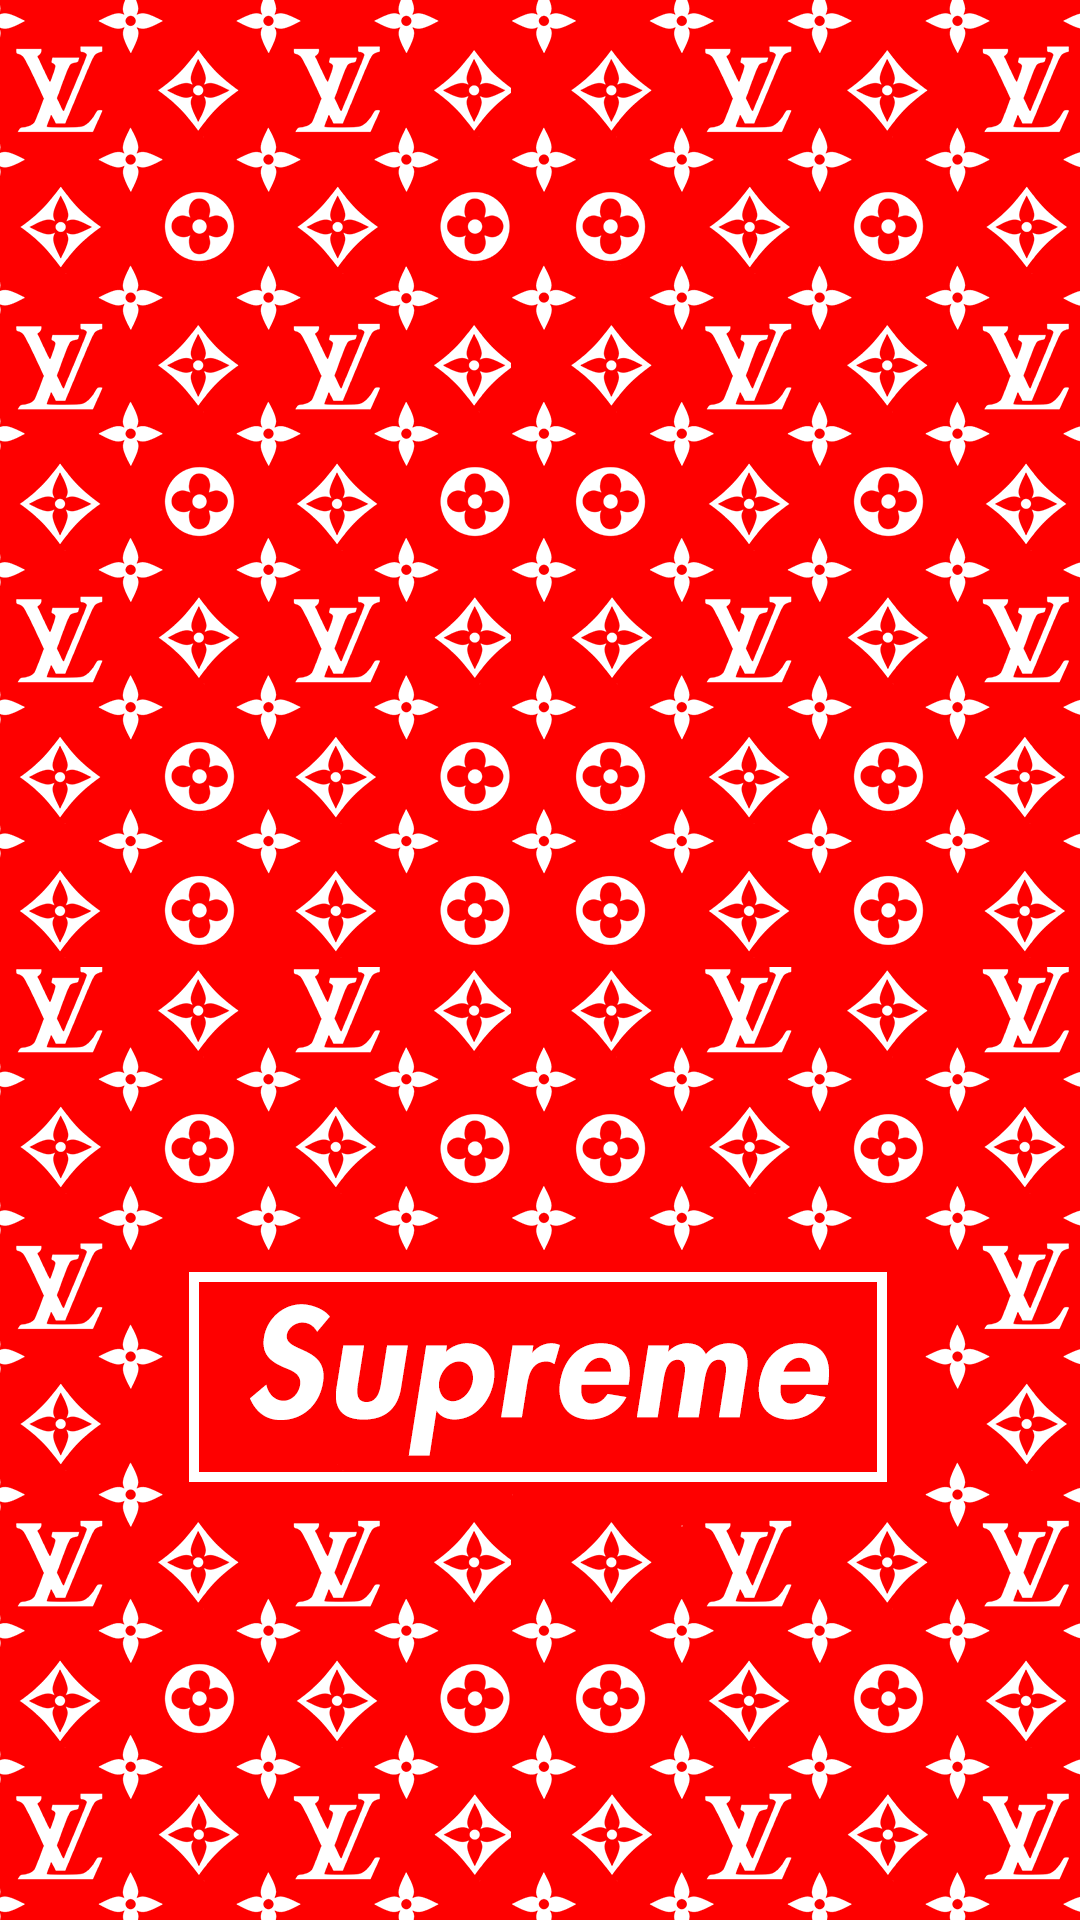 Supreme Louis Vuitton hd wallpaper